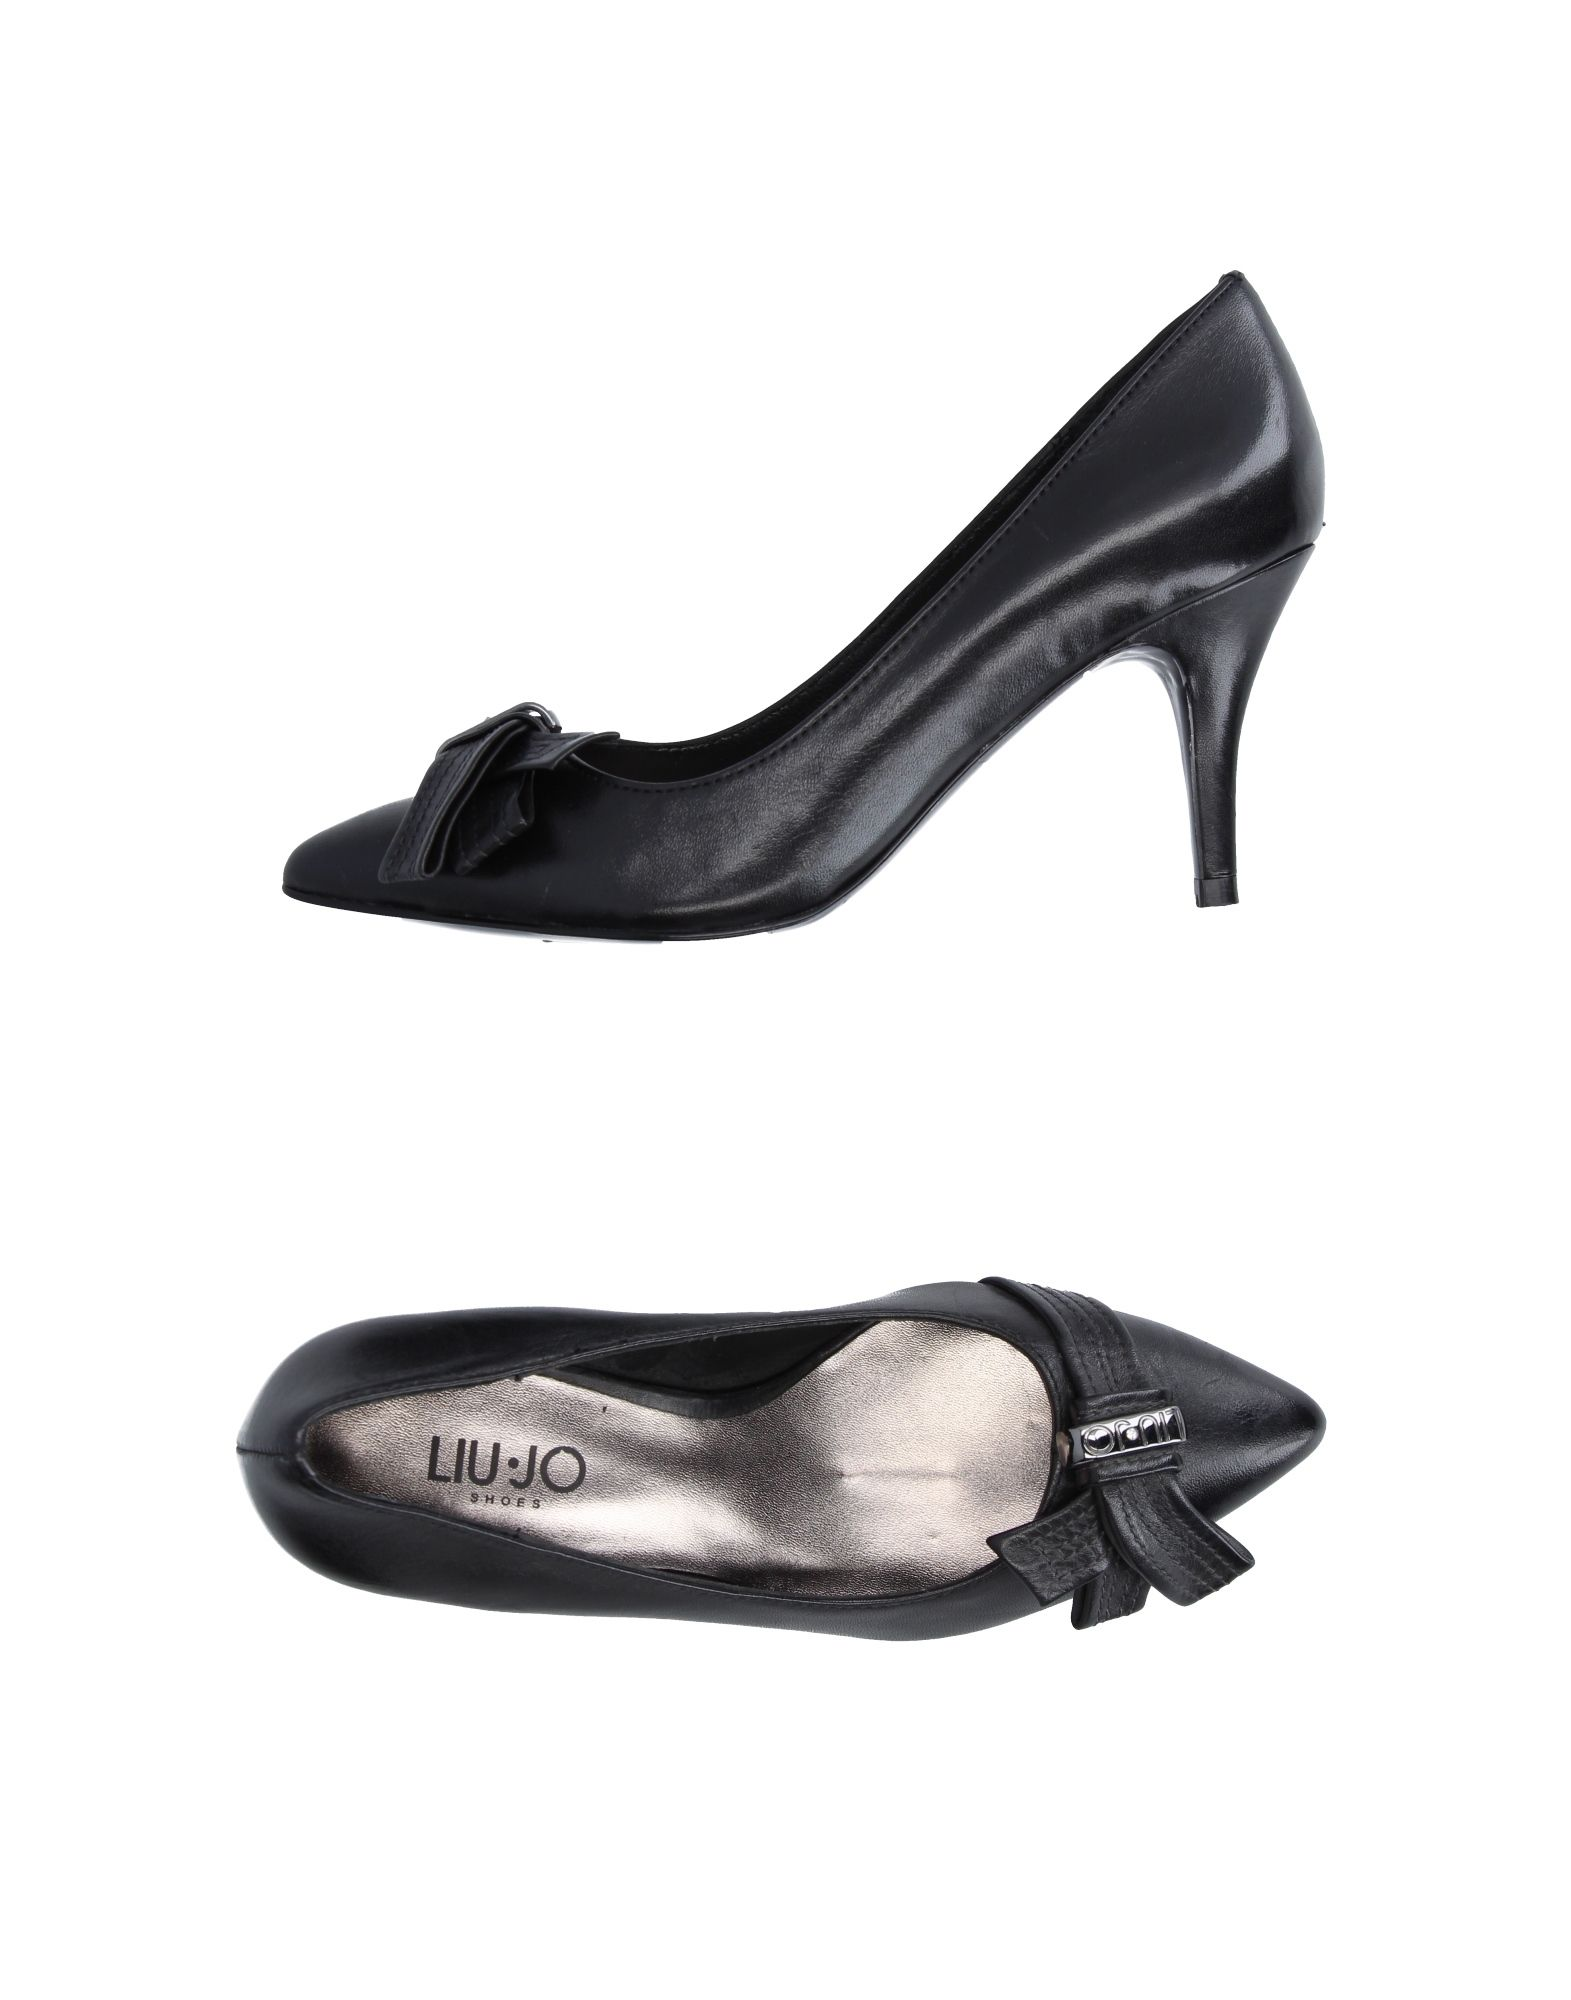 LIU JO SHOES Pumps